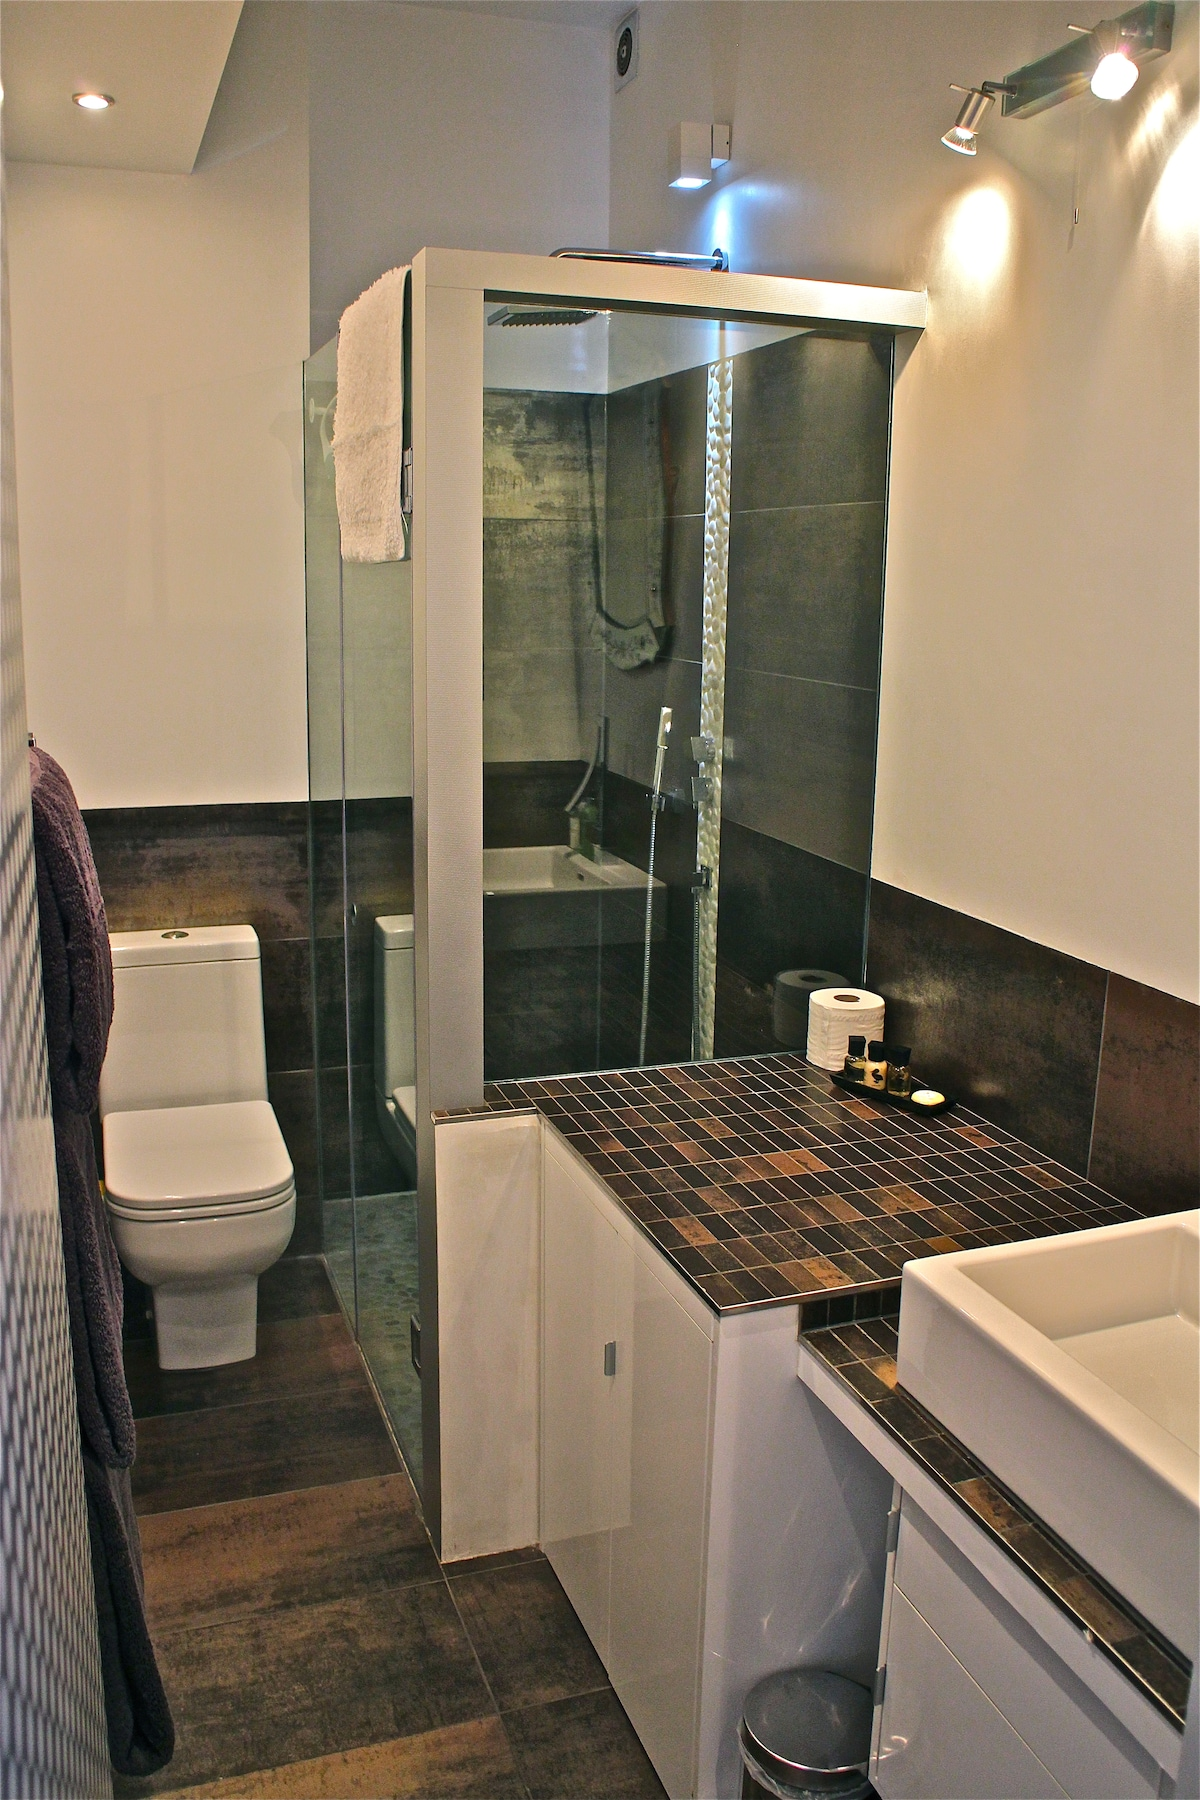 Shower room. Complimentary toiletries included